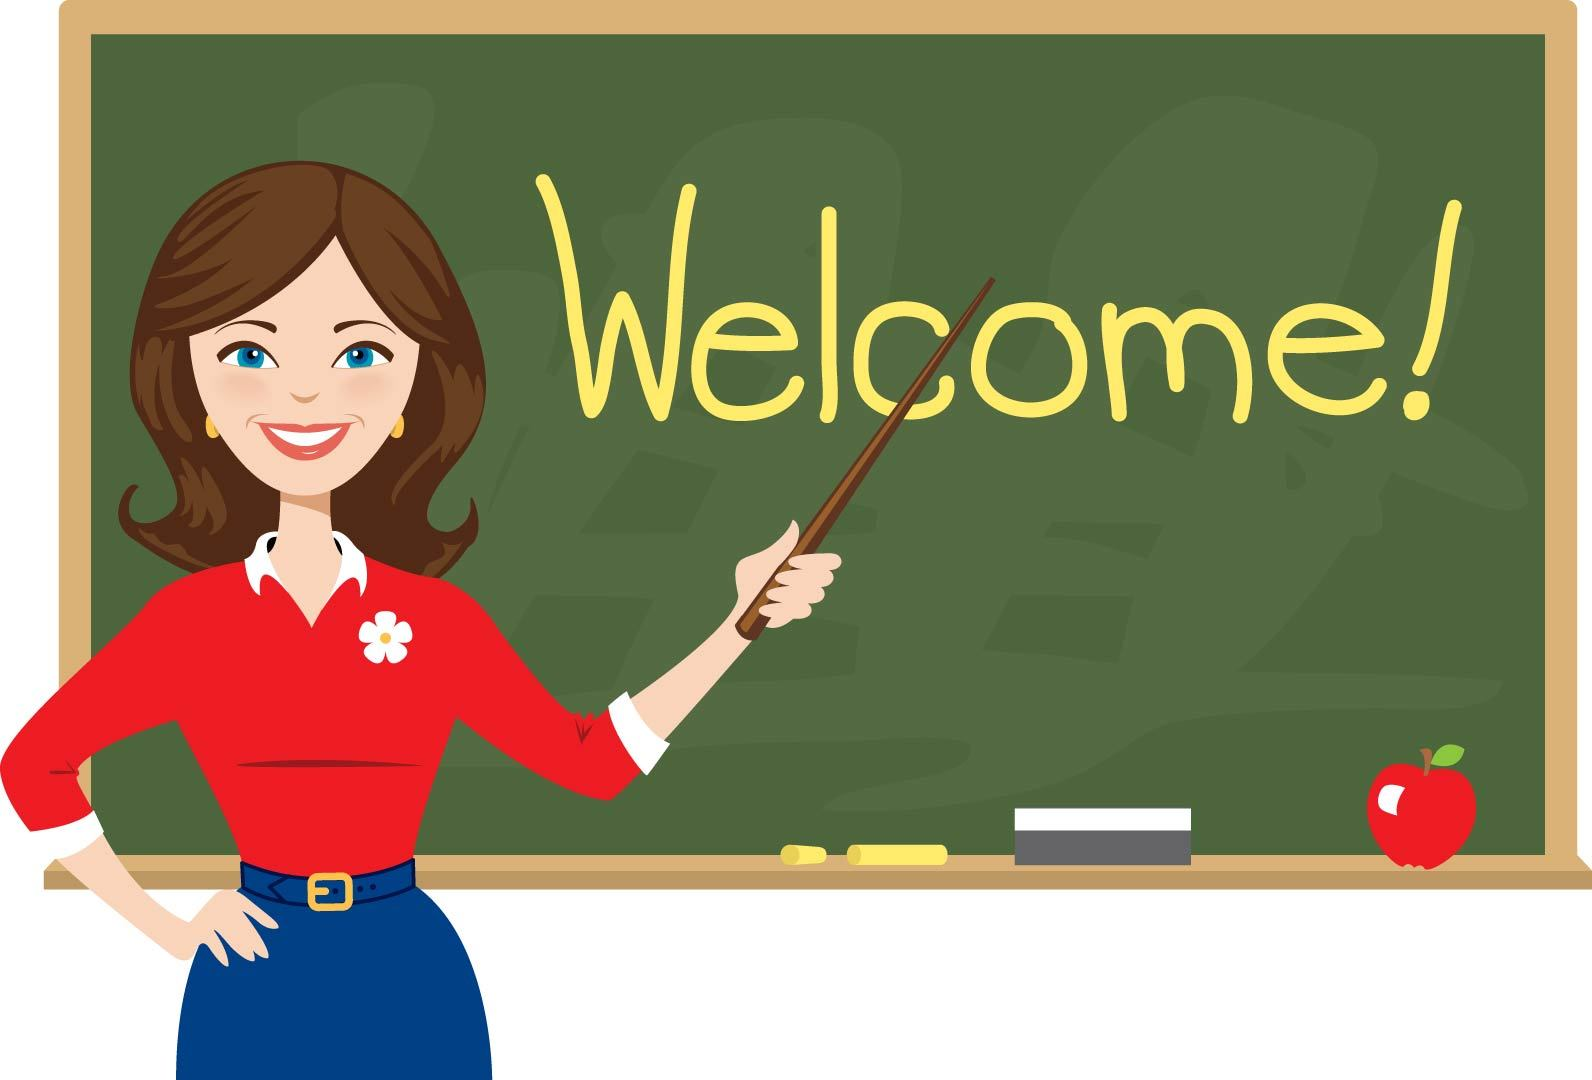 substitute teachers service blog interested in becoming a substitute teacher in pa whether you re a retiree recent college graduate or a stay at home parent looking to return to the